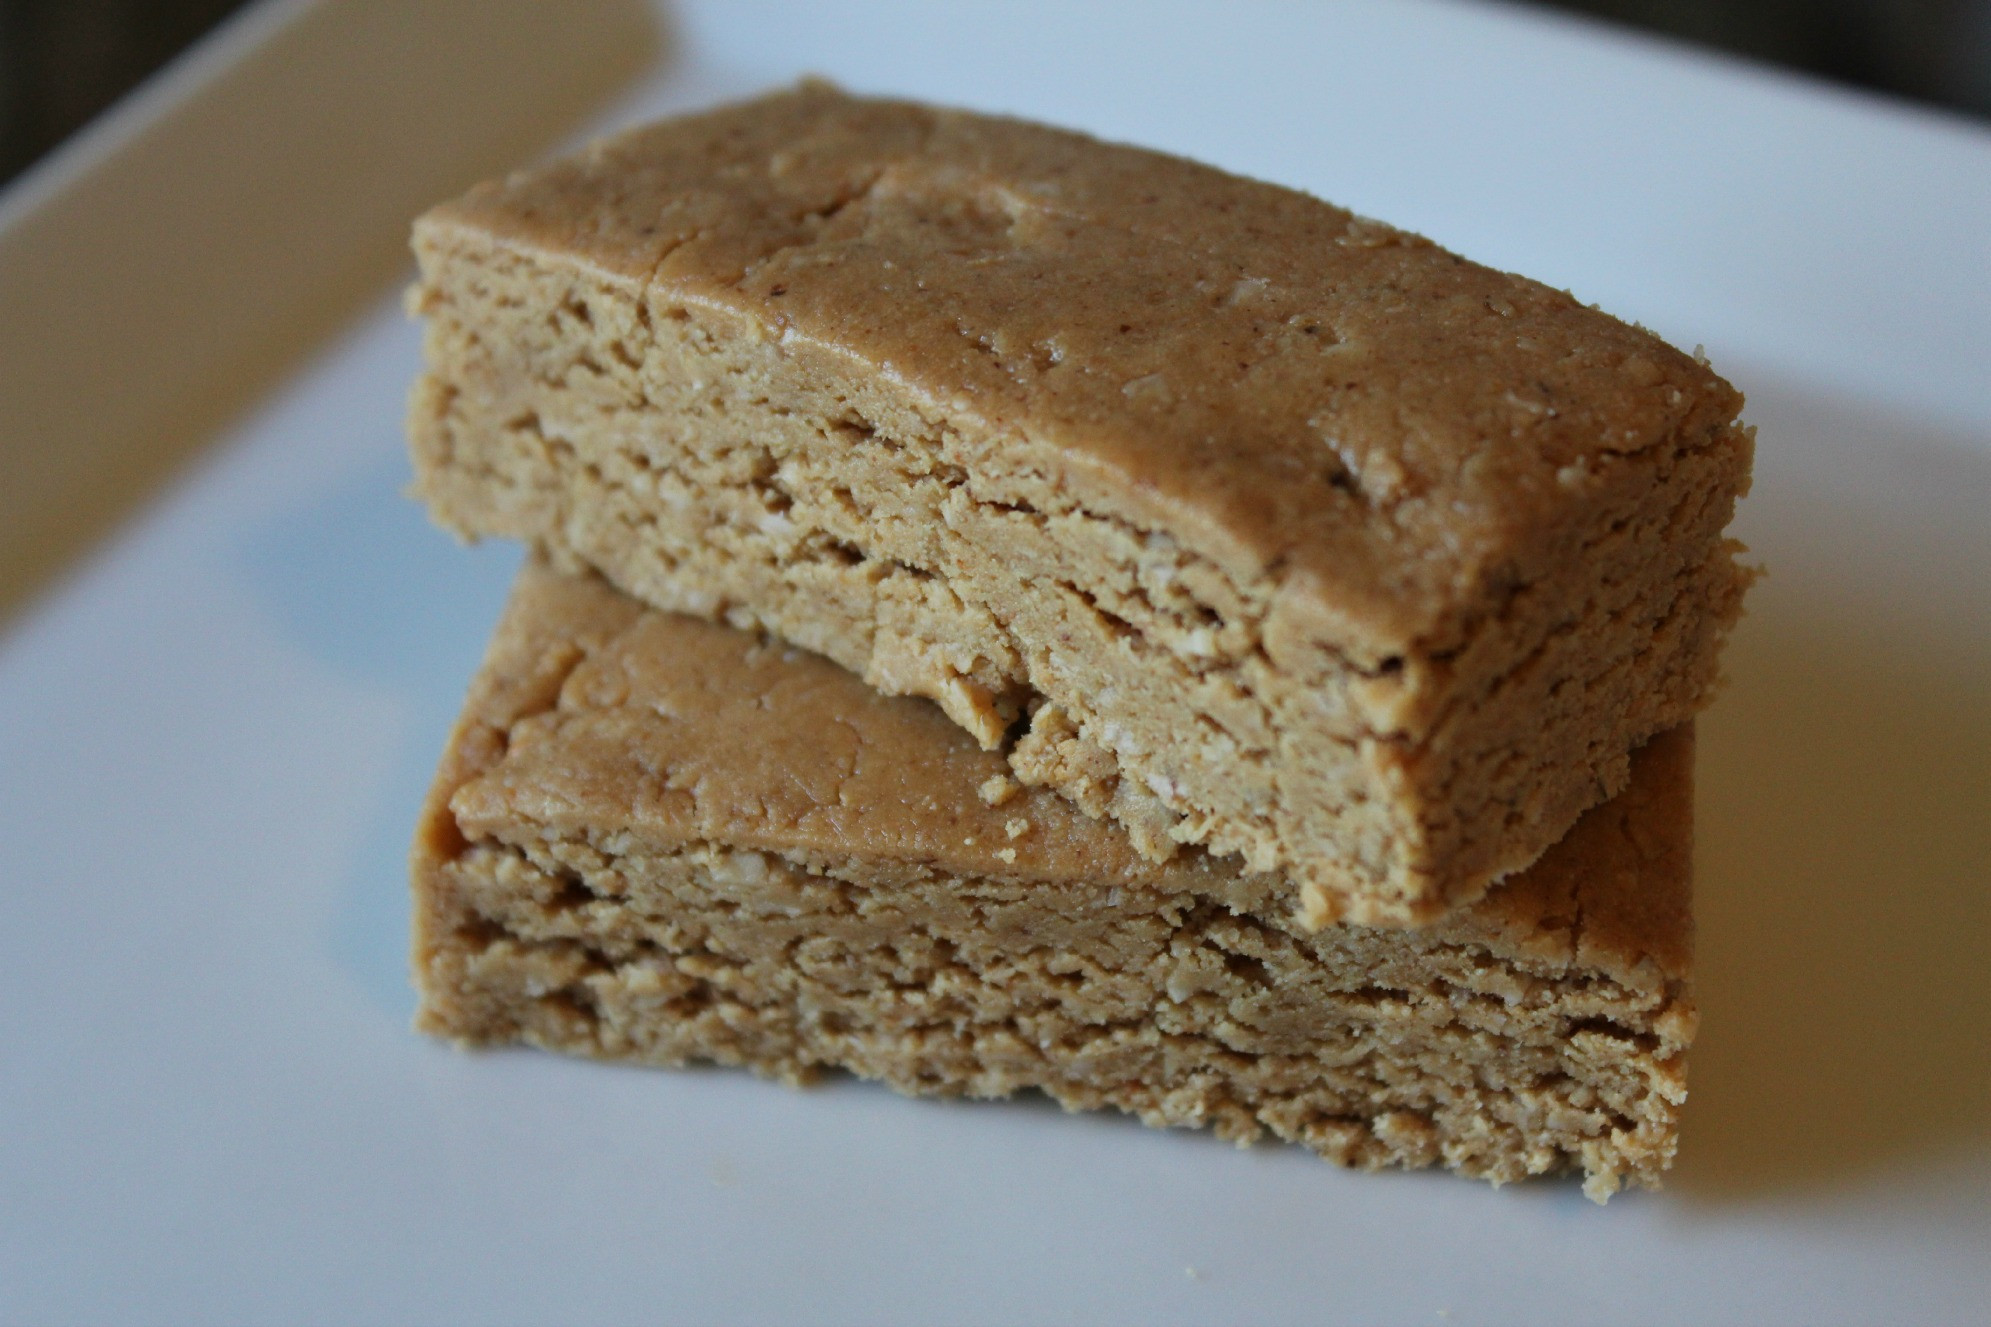 Best ideas about DIY Protein Bars . Save or Pin Make Homemade Protein Bars Now.